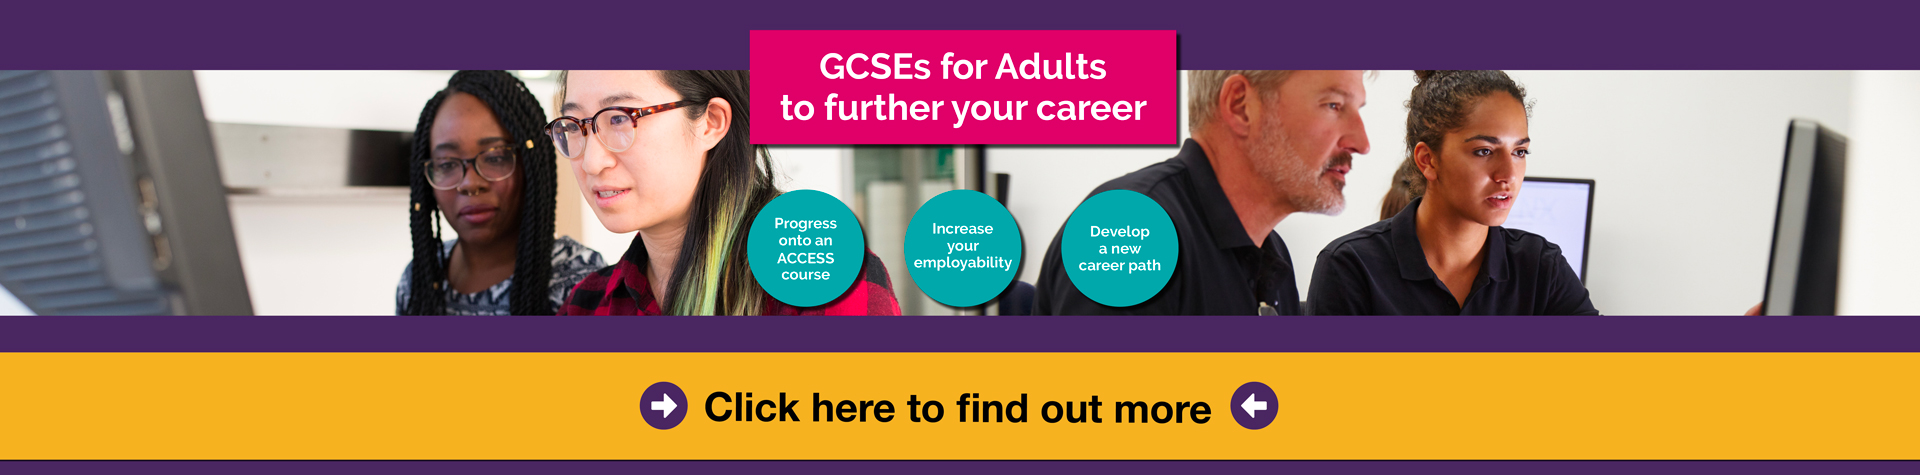 GCSEs for Adults